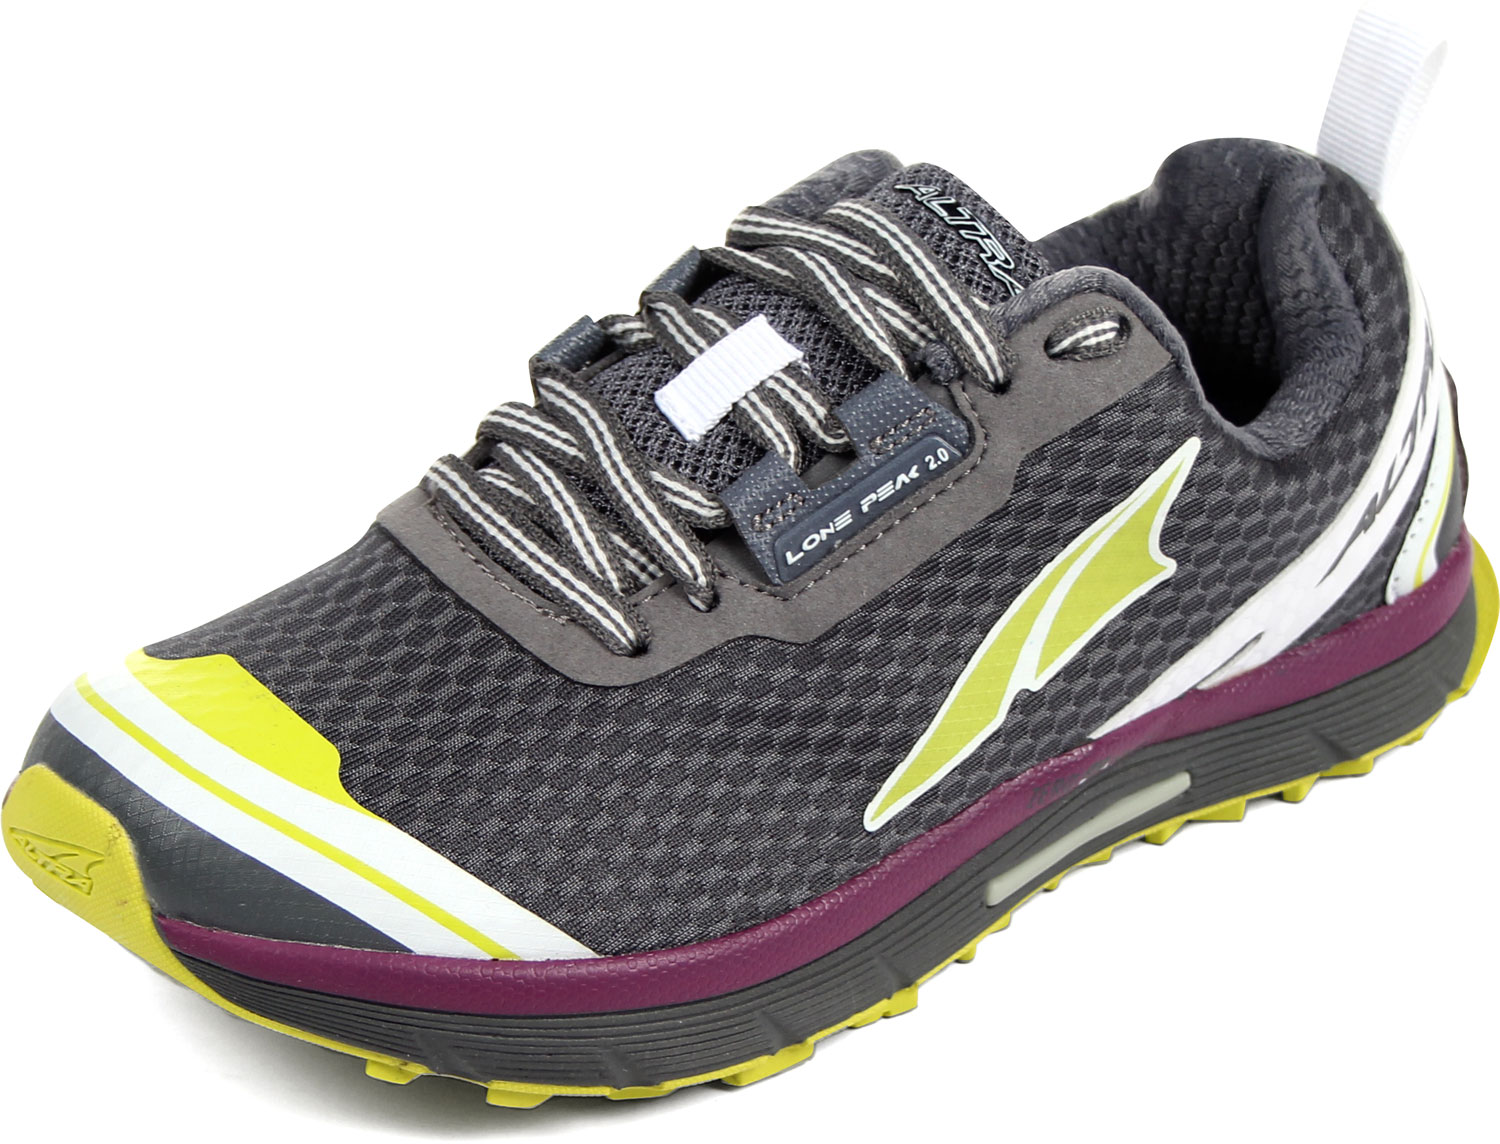 Image of Altra - Womens Lone Peak 2.0 Trail Shoes